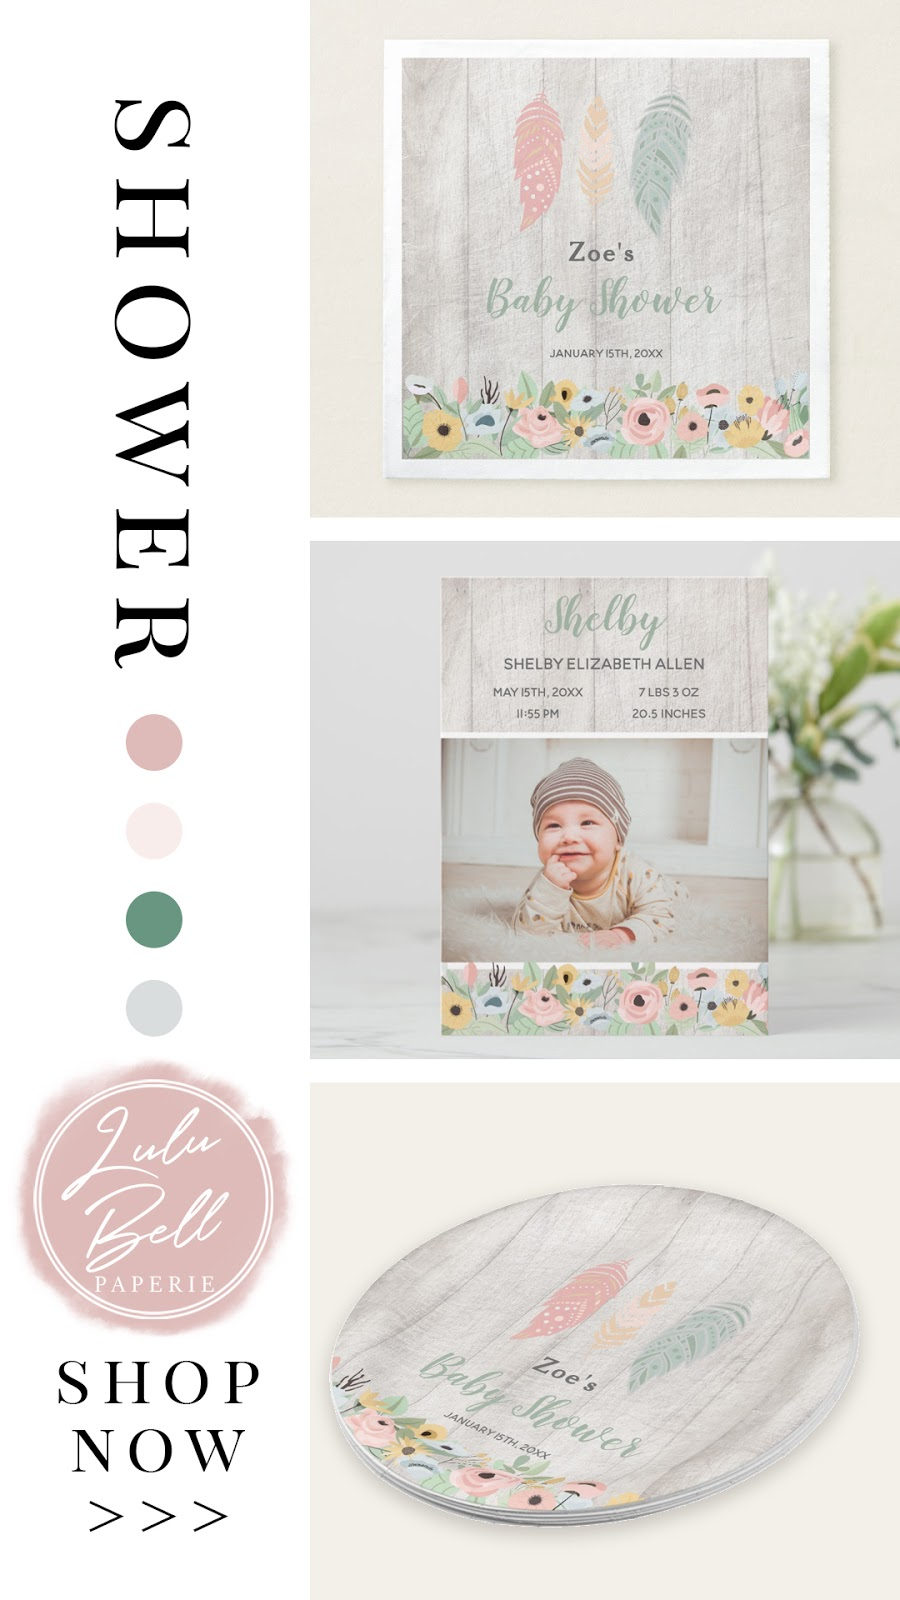 Coordinating Collection of Boho Baby Nursery Decor, Shower Invitations Party Suite, and Paint Color Palettes for Your Baby Girl. With Feathers, Deer, Flowers, Wood, and Birds. In Pink, Blush, Green, and Pale Gray.